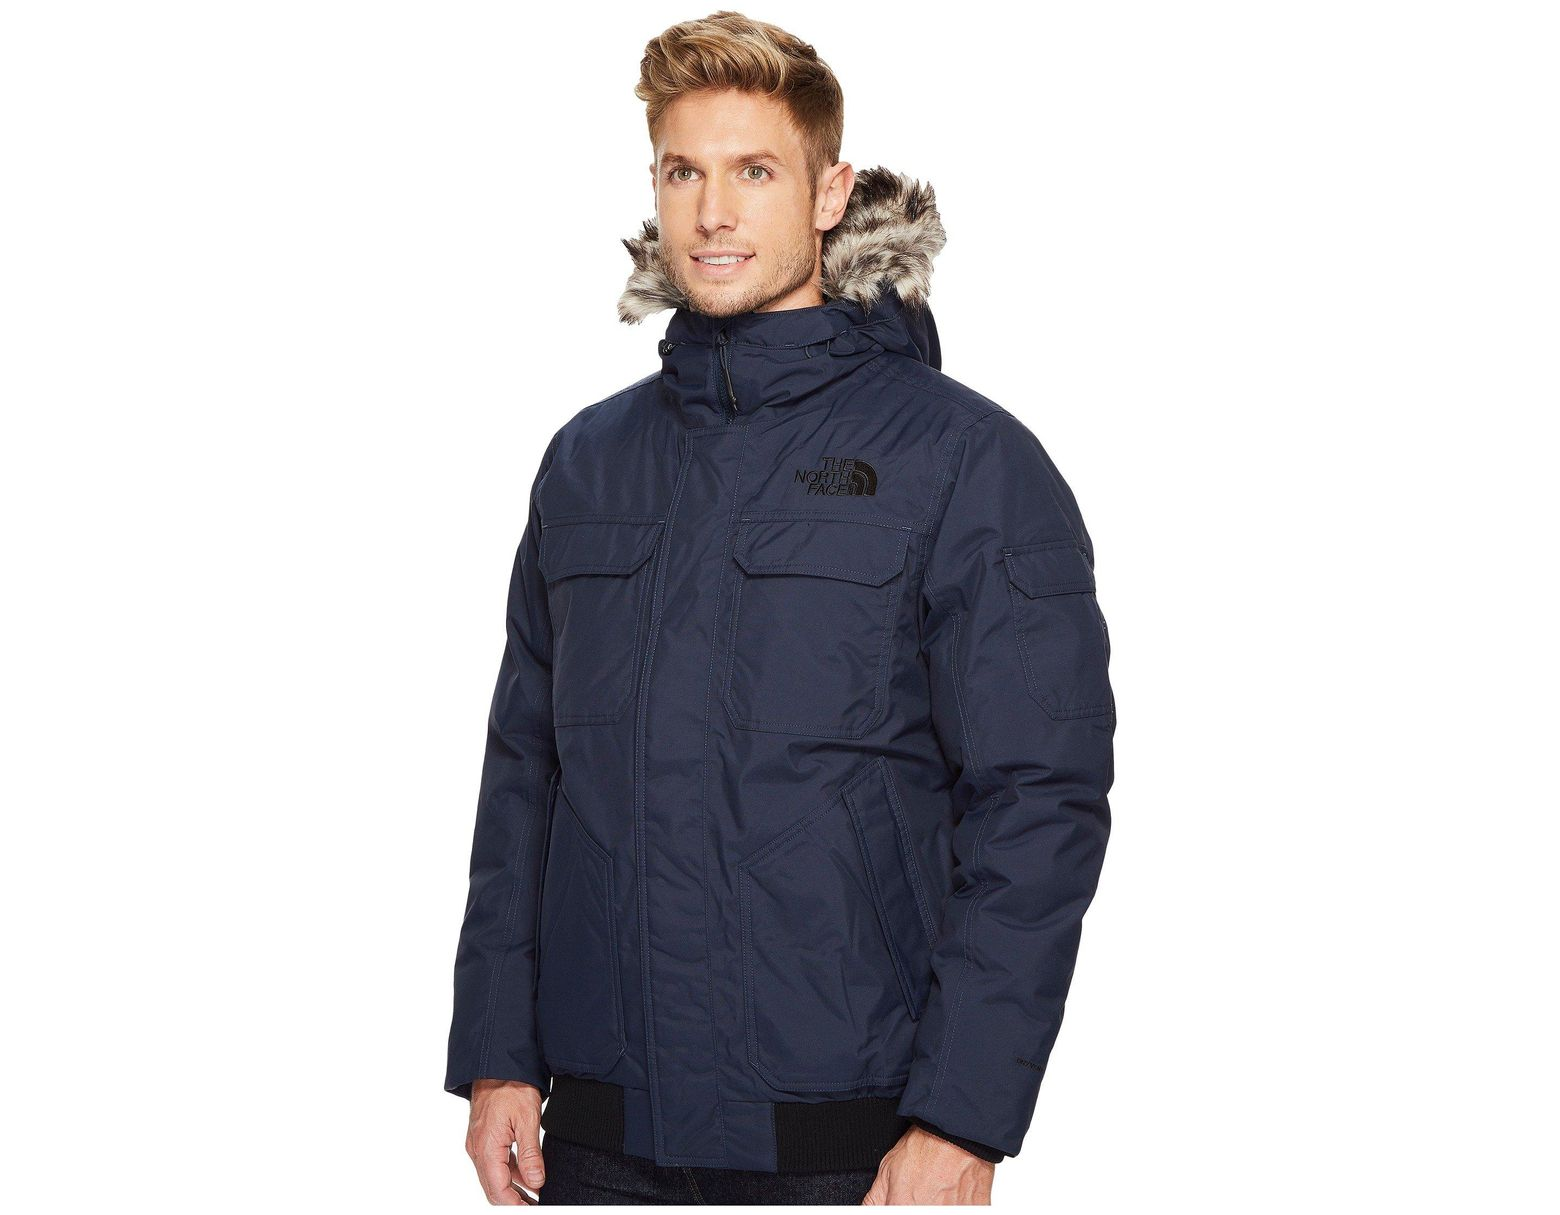 68ec9d9f6 Men's Blue Gotham Jacket Iii